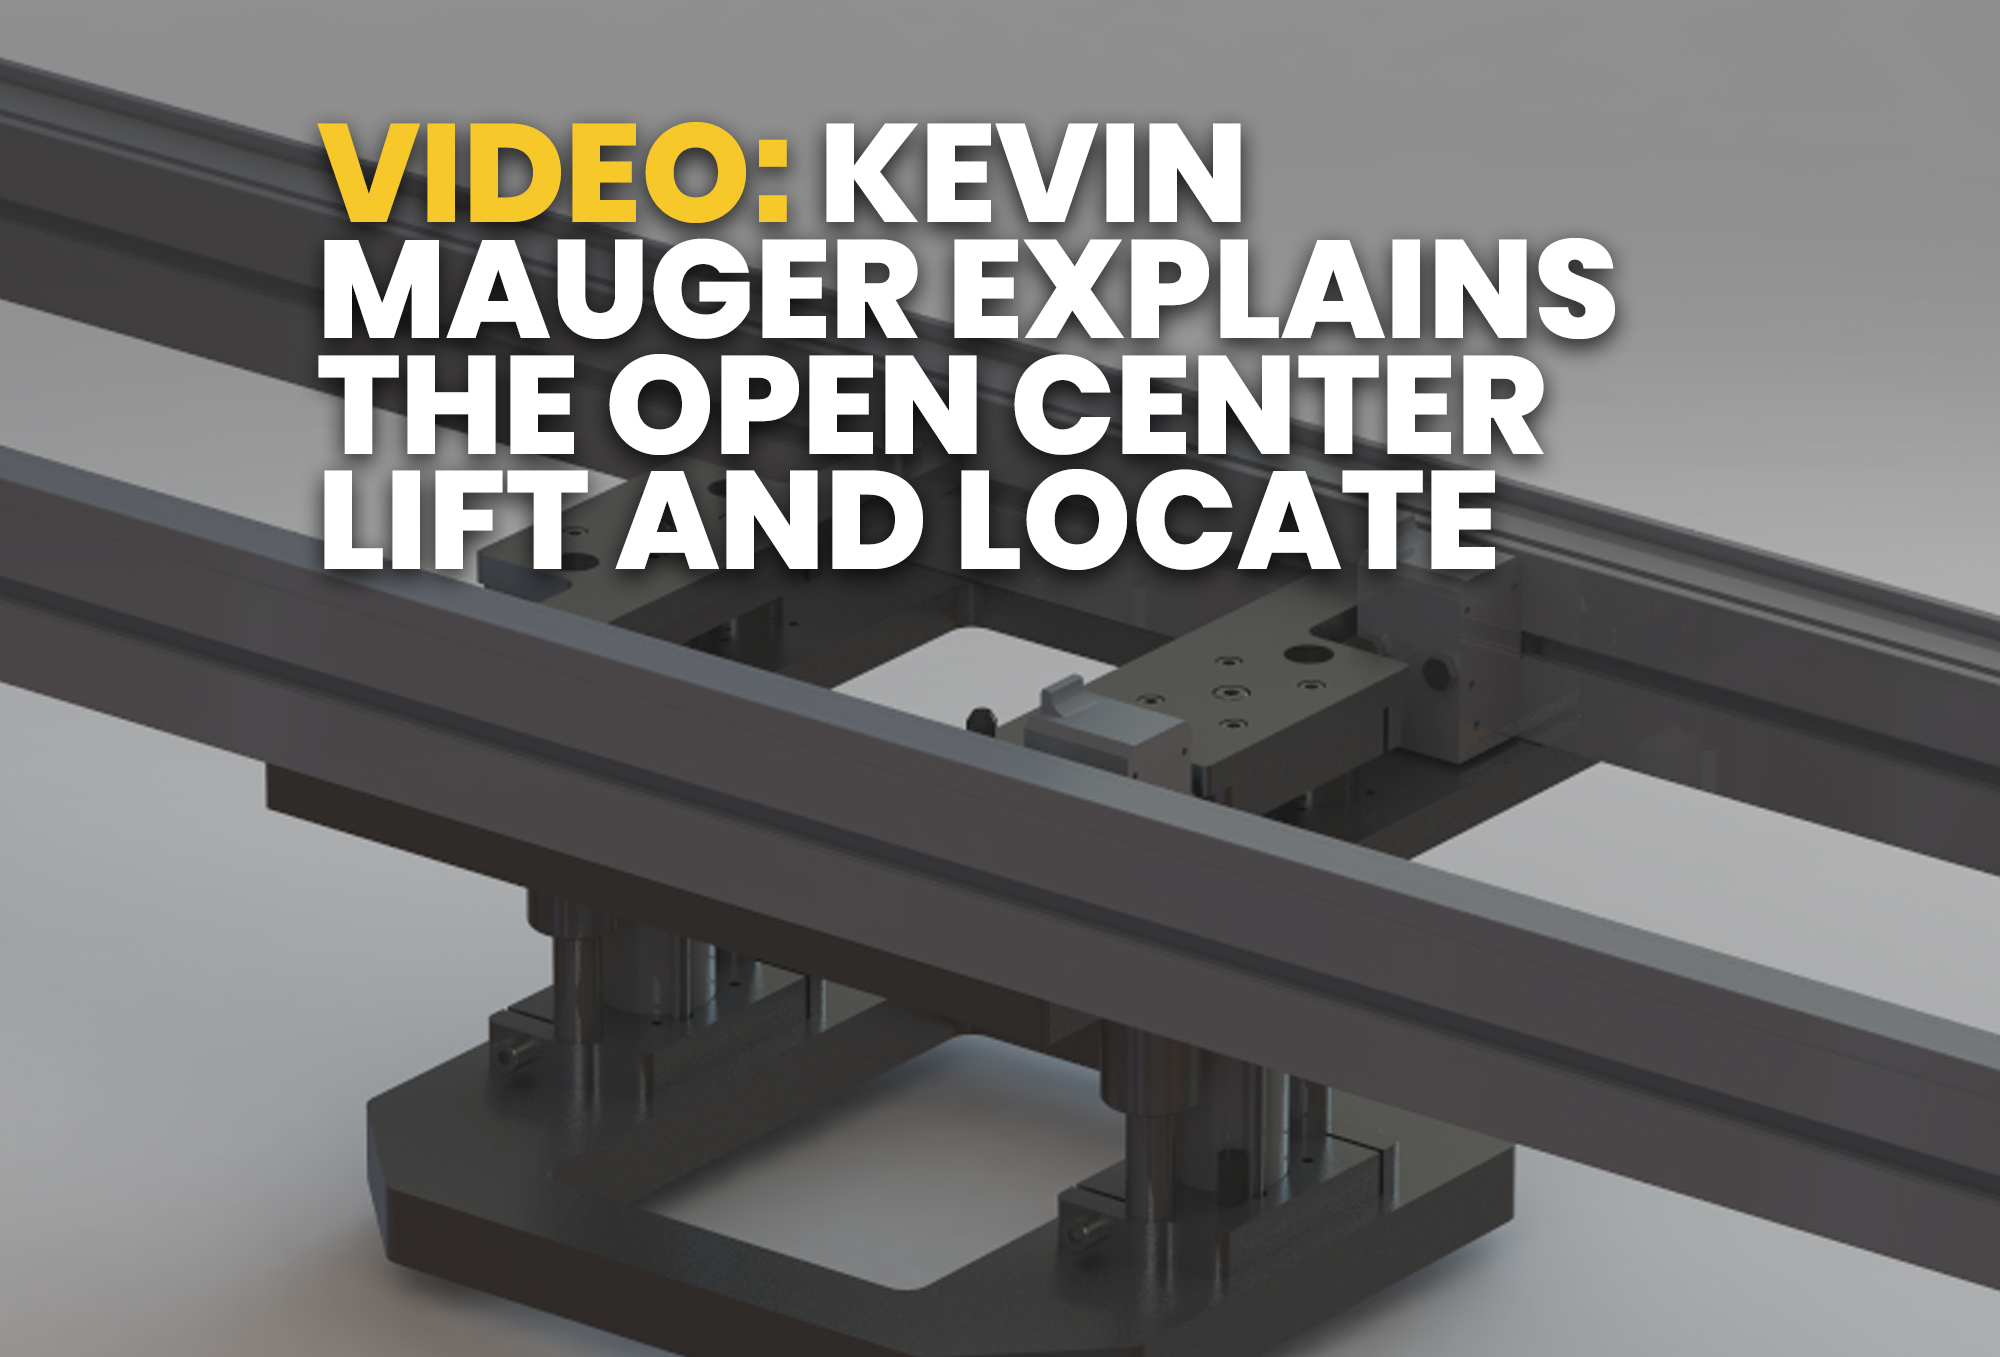 Kevin Mauger Explains the Open Center Lift and Locate - resource